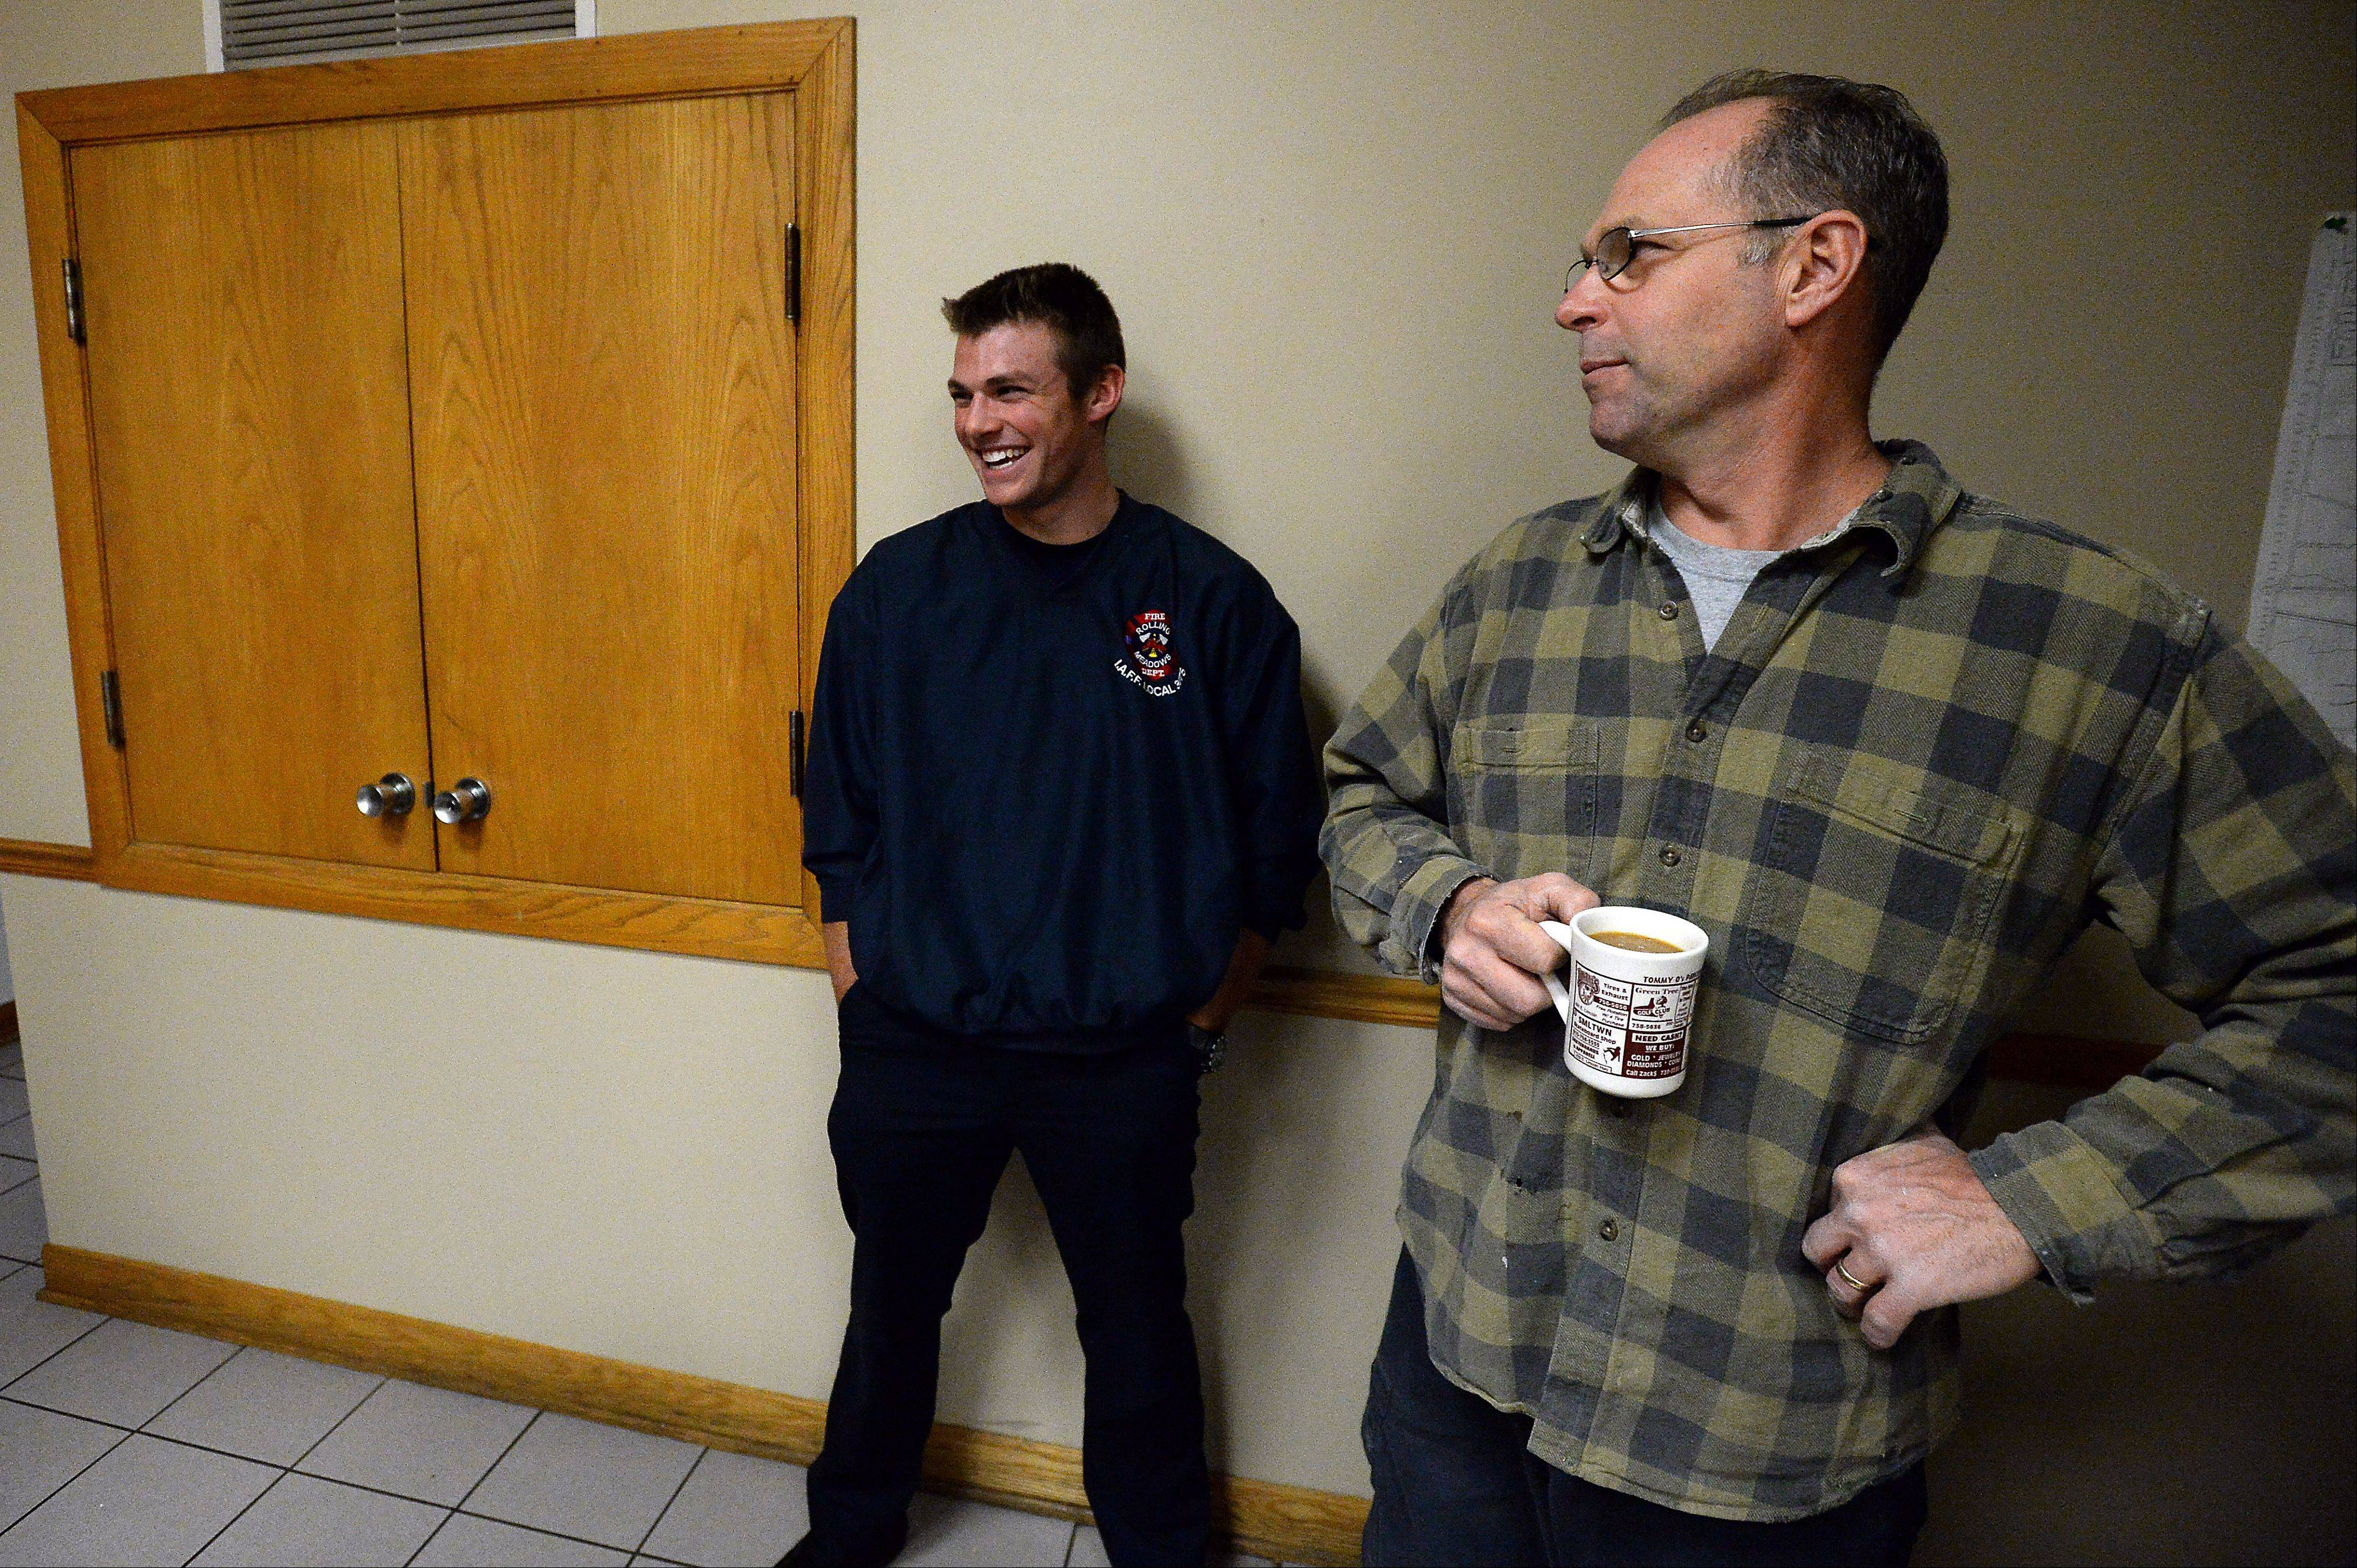 Rolling Meadows firefighter/paramedic John Loesch Jr. laughs as his father, John Loesch Sr., stops by the firehouse. Both are firefighter/paramedics and have worked together on the ambulance as a father and son paramedic team.